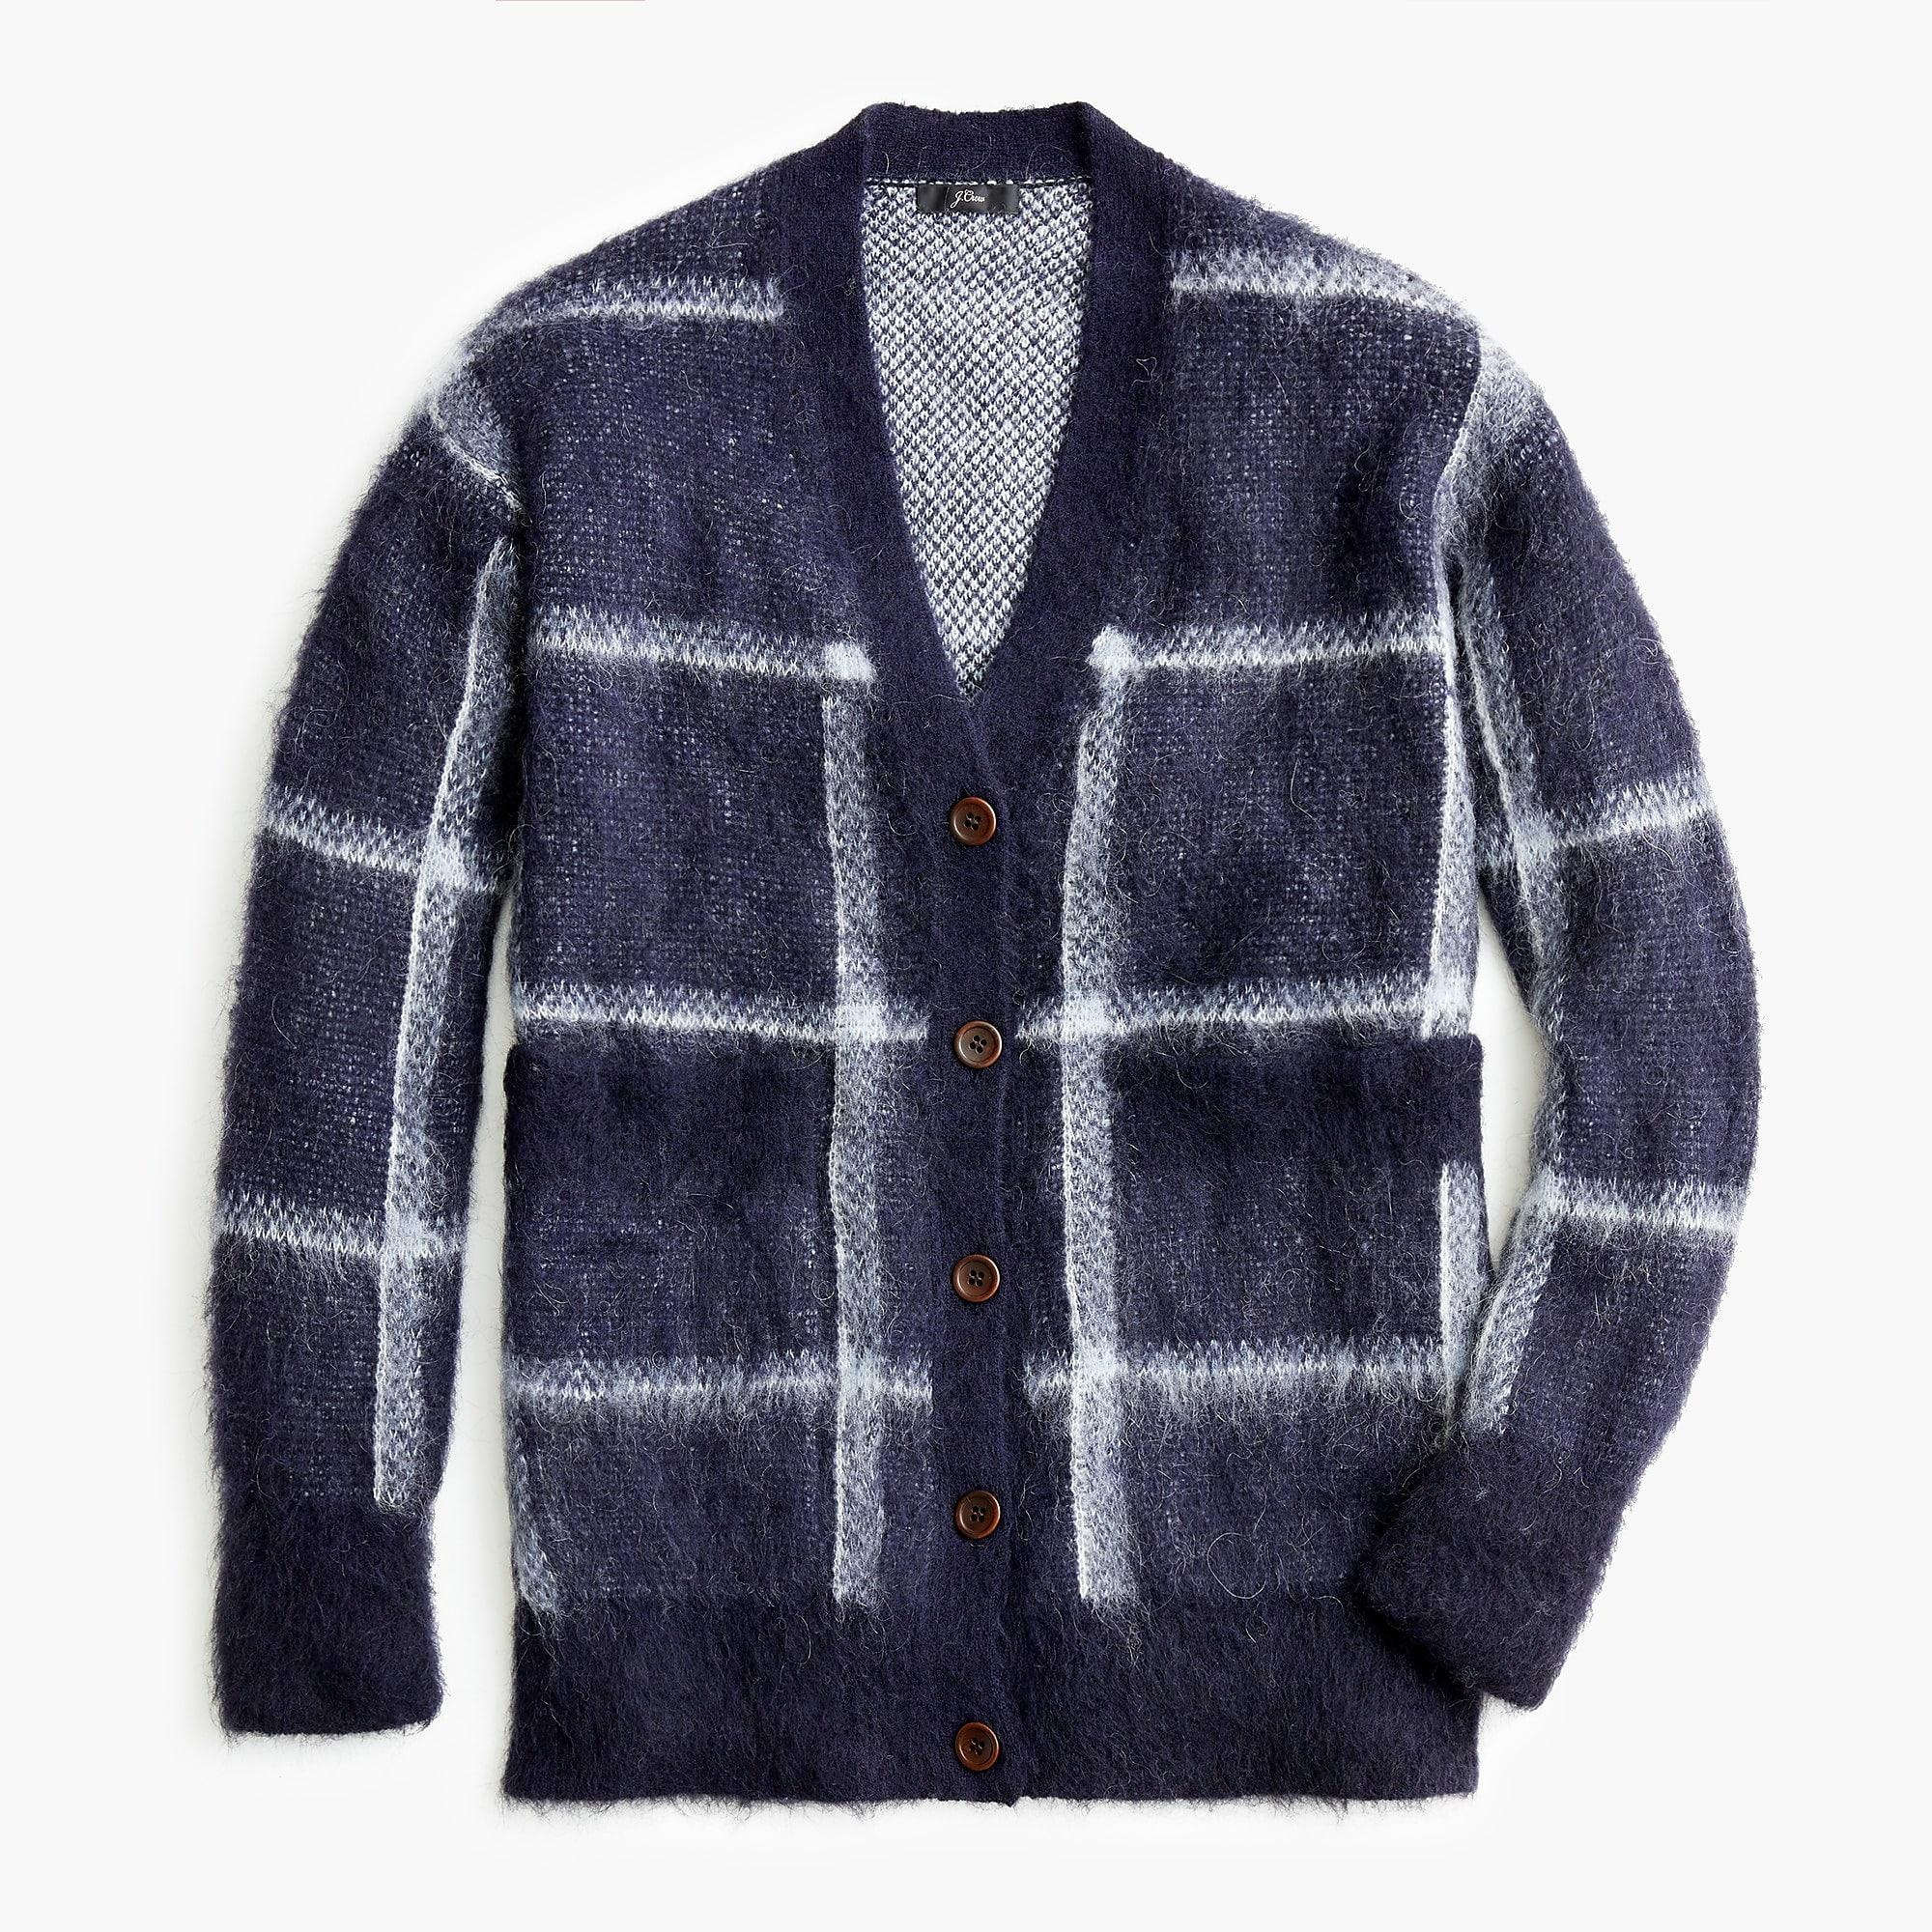 b94a0fabe5 Lyst - J.Crew Lian Checked Brushed Knitted Cardigan in Blue